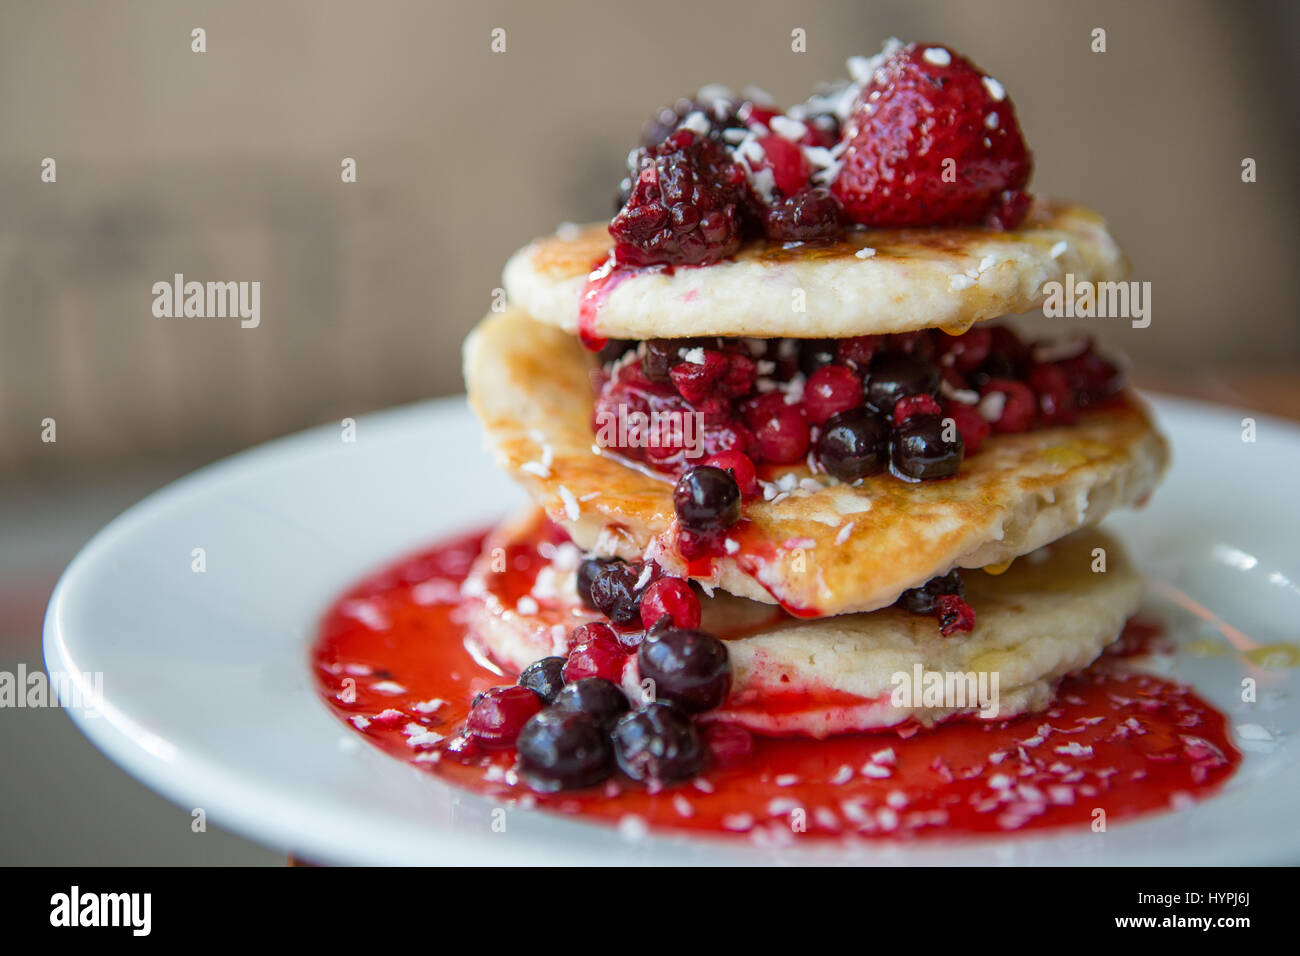 Raspberry and blueberry pancake stack - Stock Image